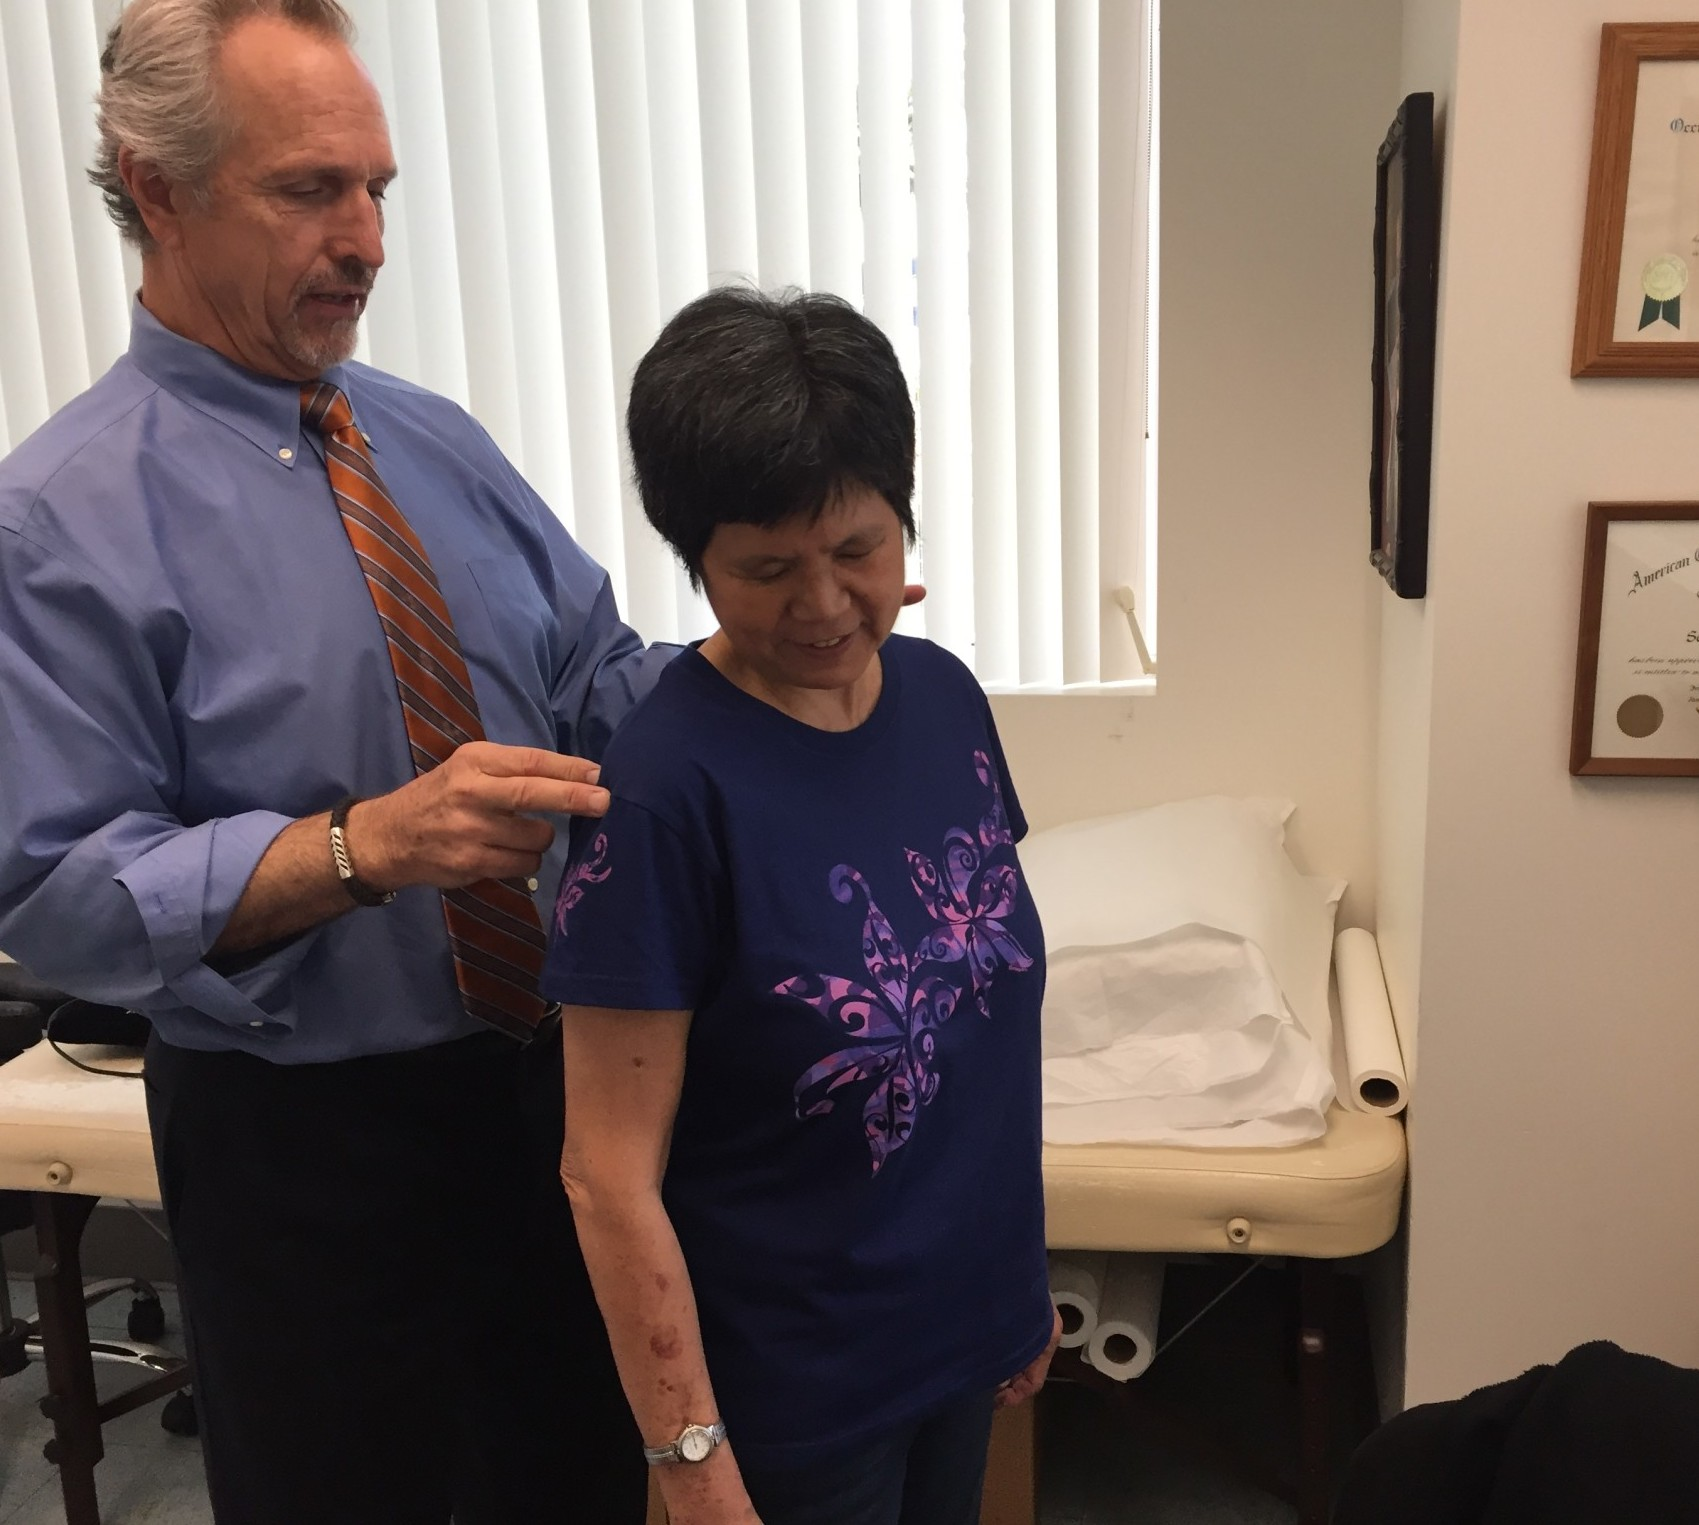 Dr. Scott McCaffrey examines Bonnie Chan at WorkStar Injury Recovery Center in Ewa Beach